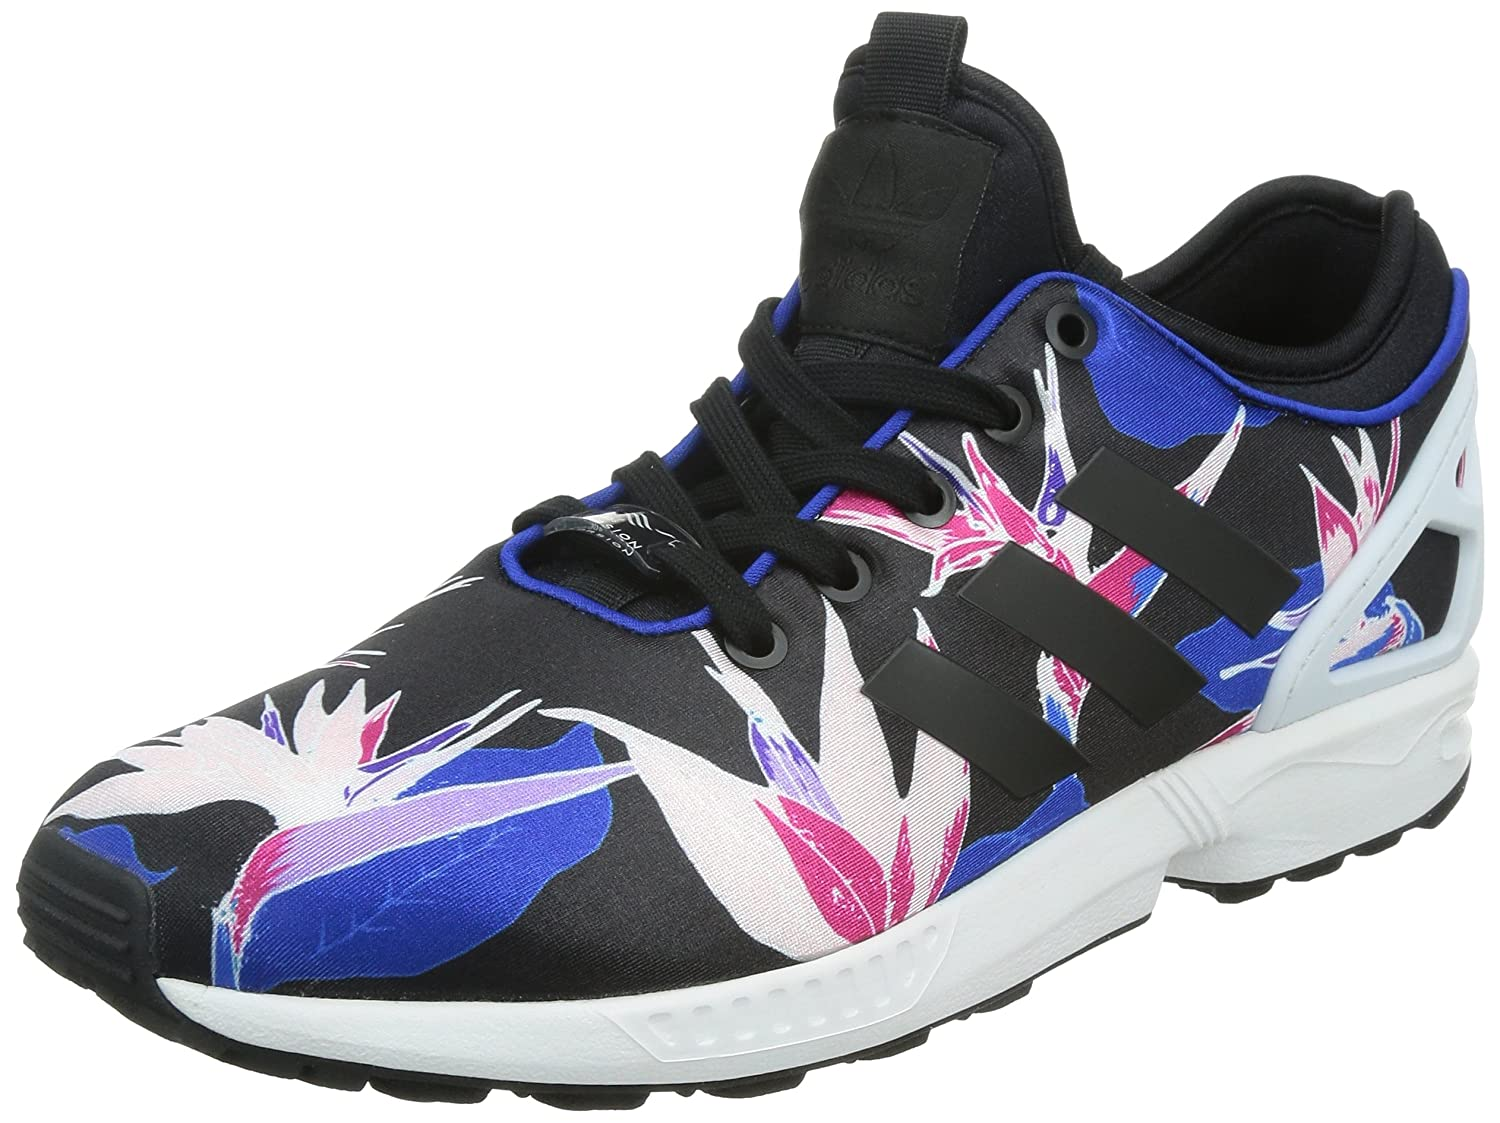 e2122b6acbc7c adidas Zx Flux NPS, Women's Low-Top Sneakers